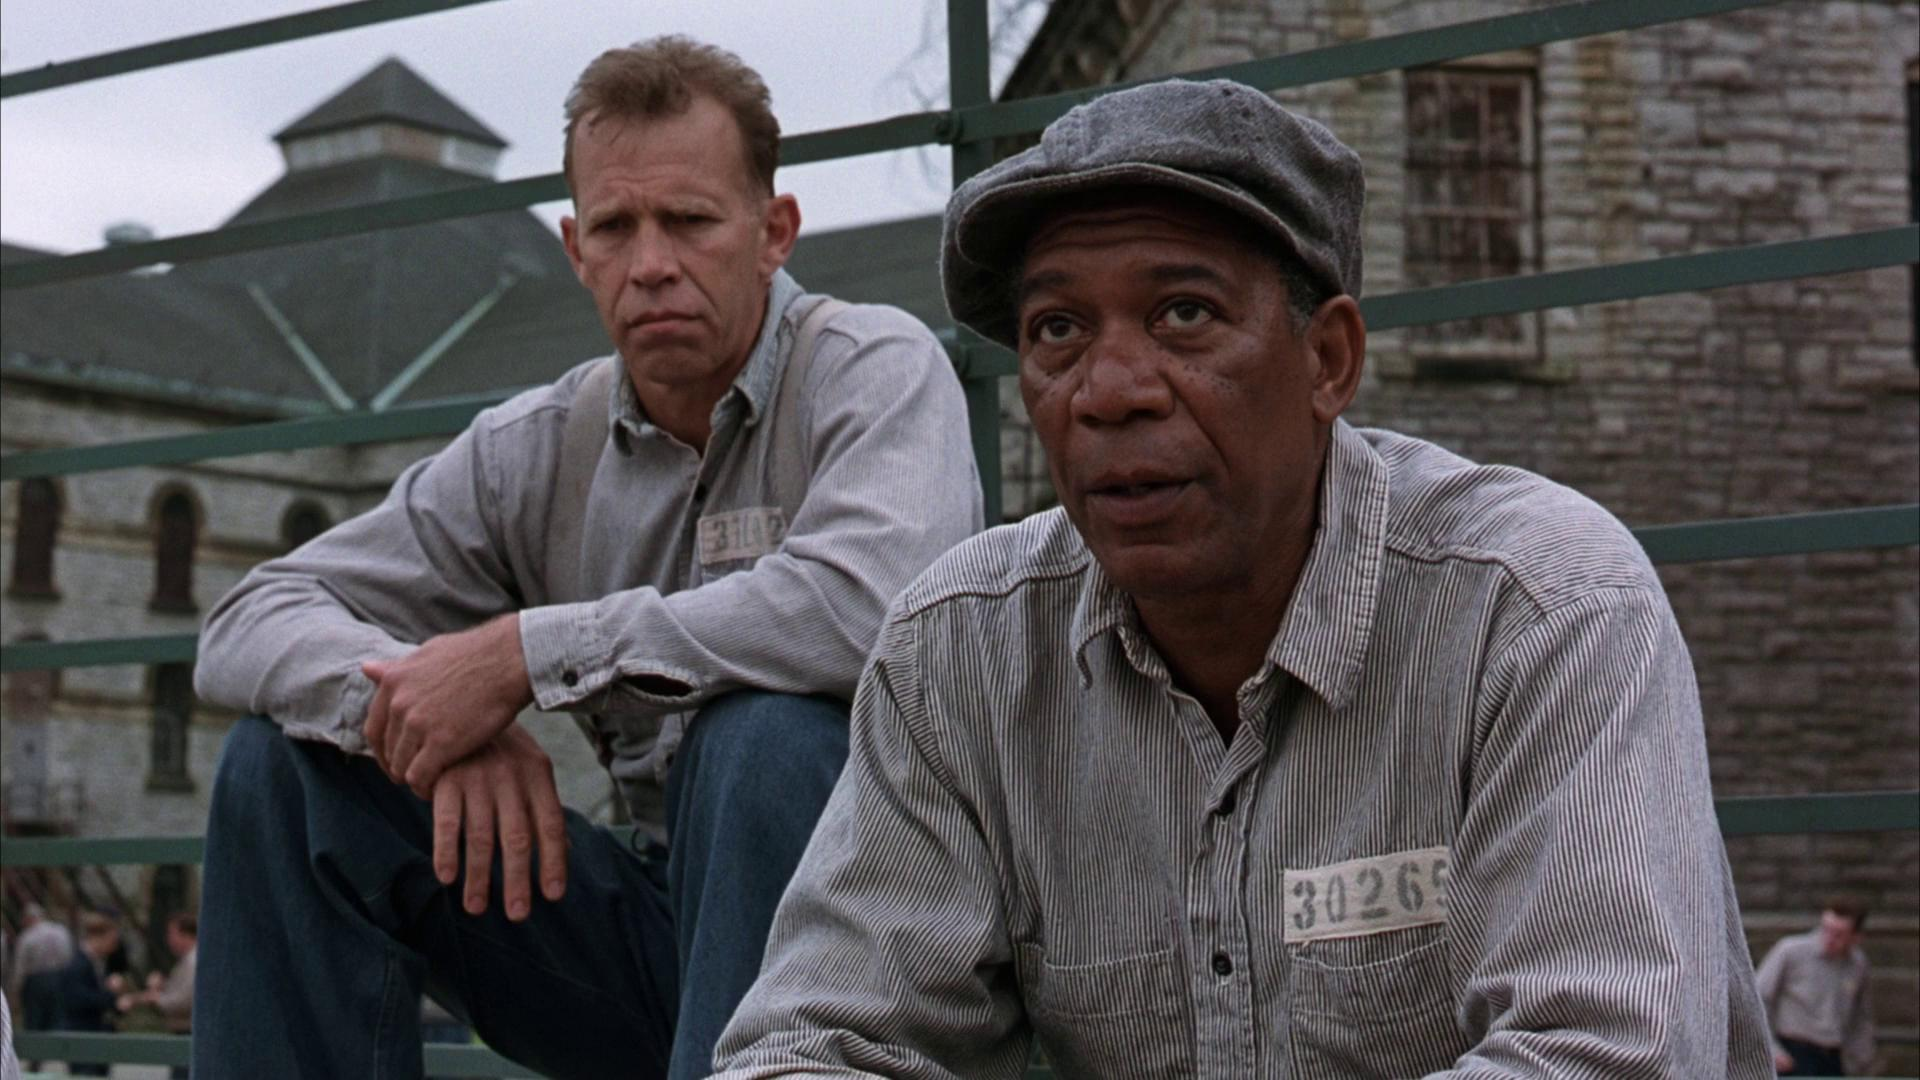 a comparison of two films the shawshank redemption by stephen king and murder in the first by dan go There are stephen king adaptations, and stephen king movies believe it or not, but there is a difference the first is full of films, both great and not so great - movies like the shining, an.